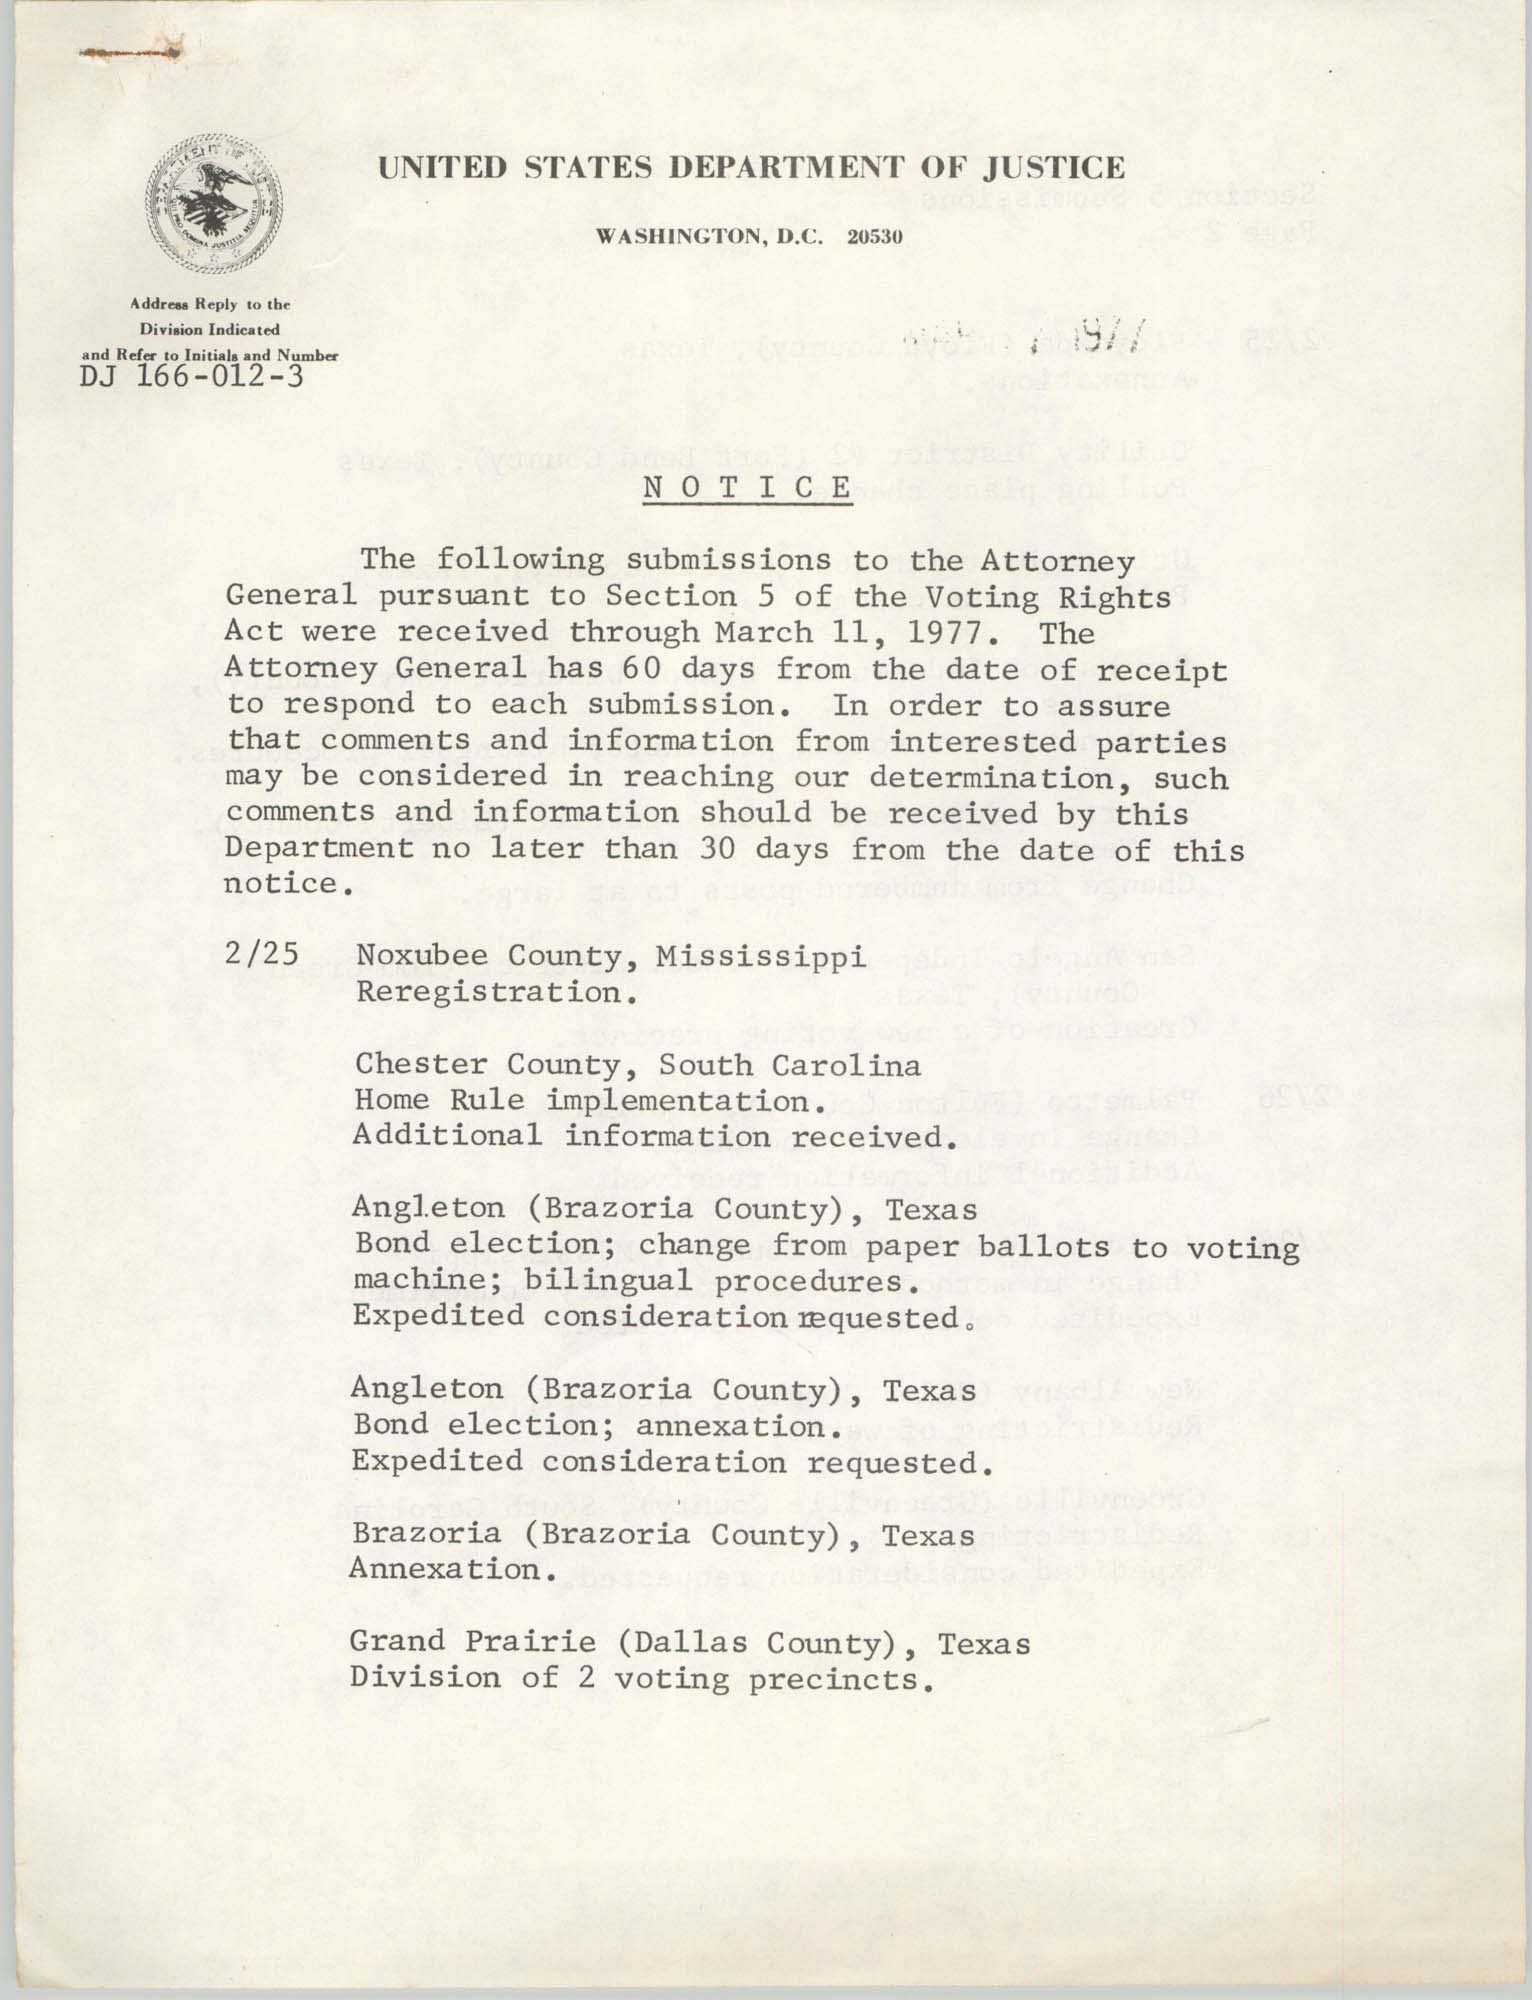 United States Department of Justice Notice, March 11, 1977